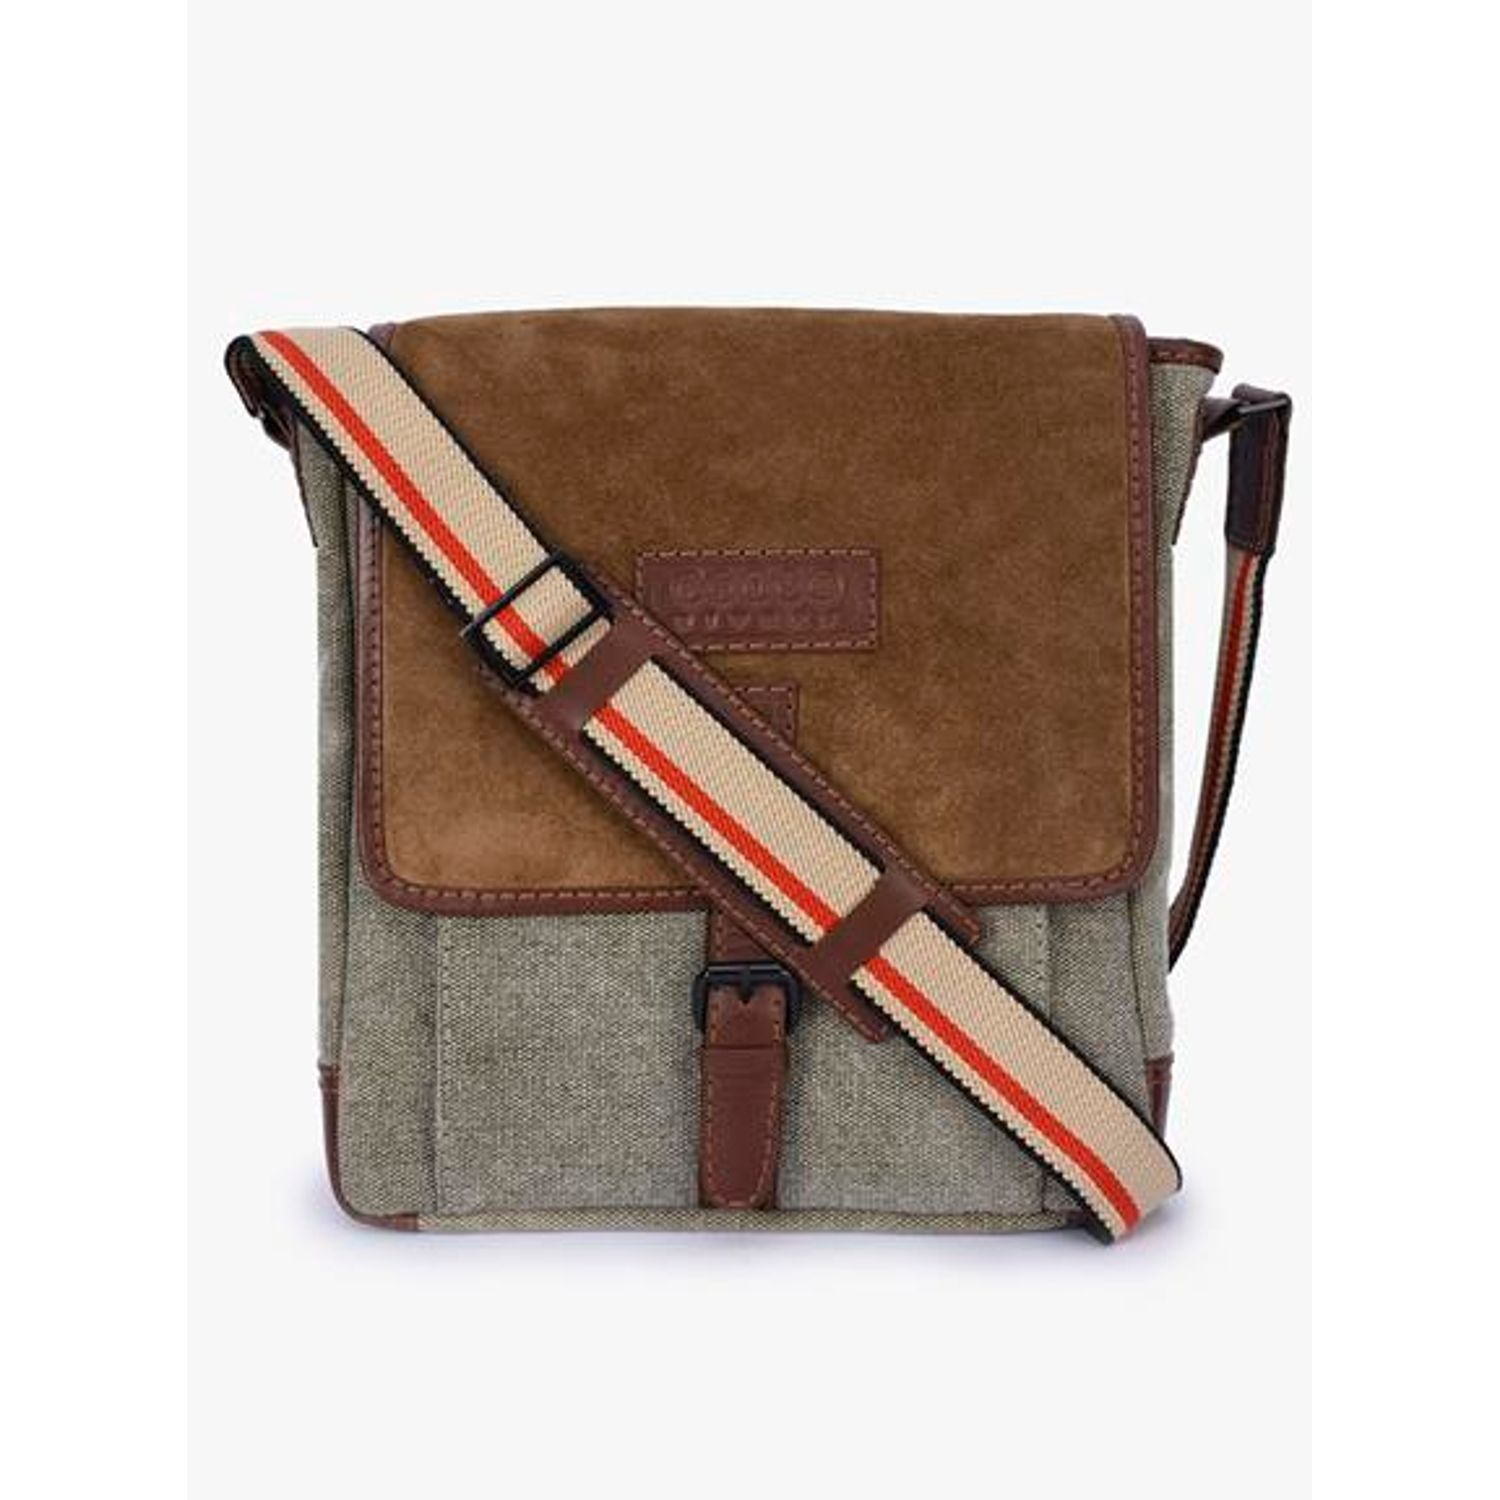 Handmade Phive Rivers Men/'s Leather /& Canvas Charcoal /& Tan Laptop Bag Briefcase